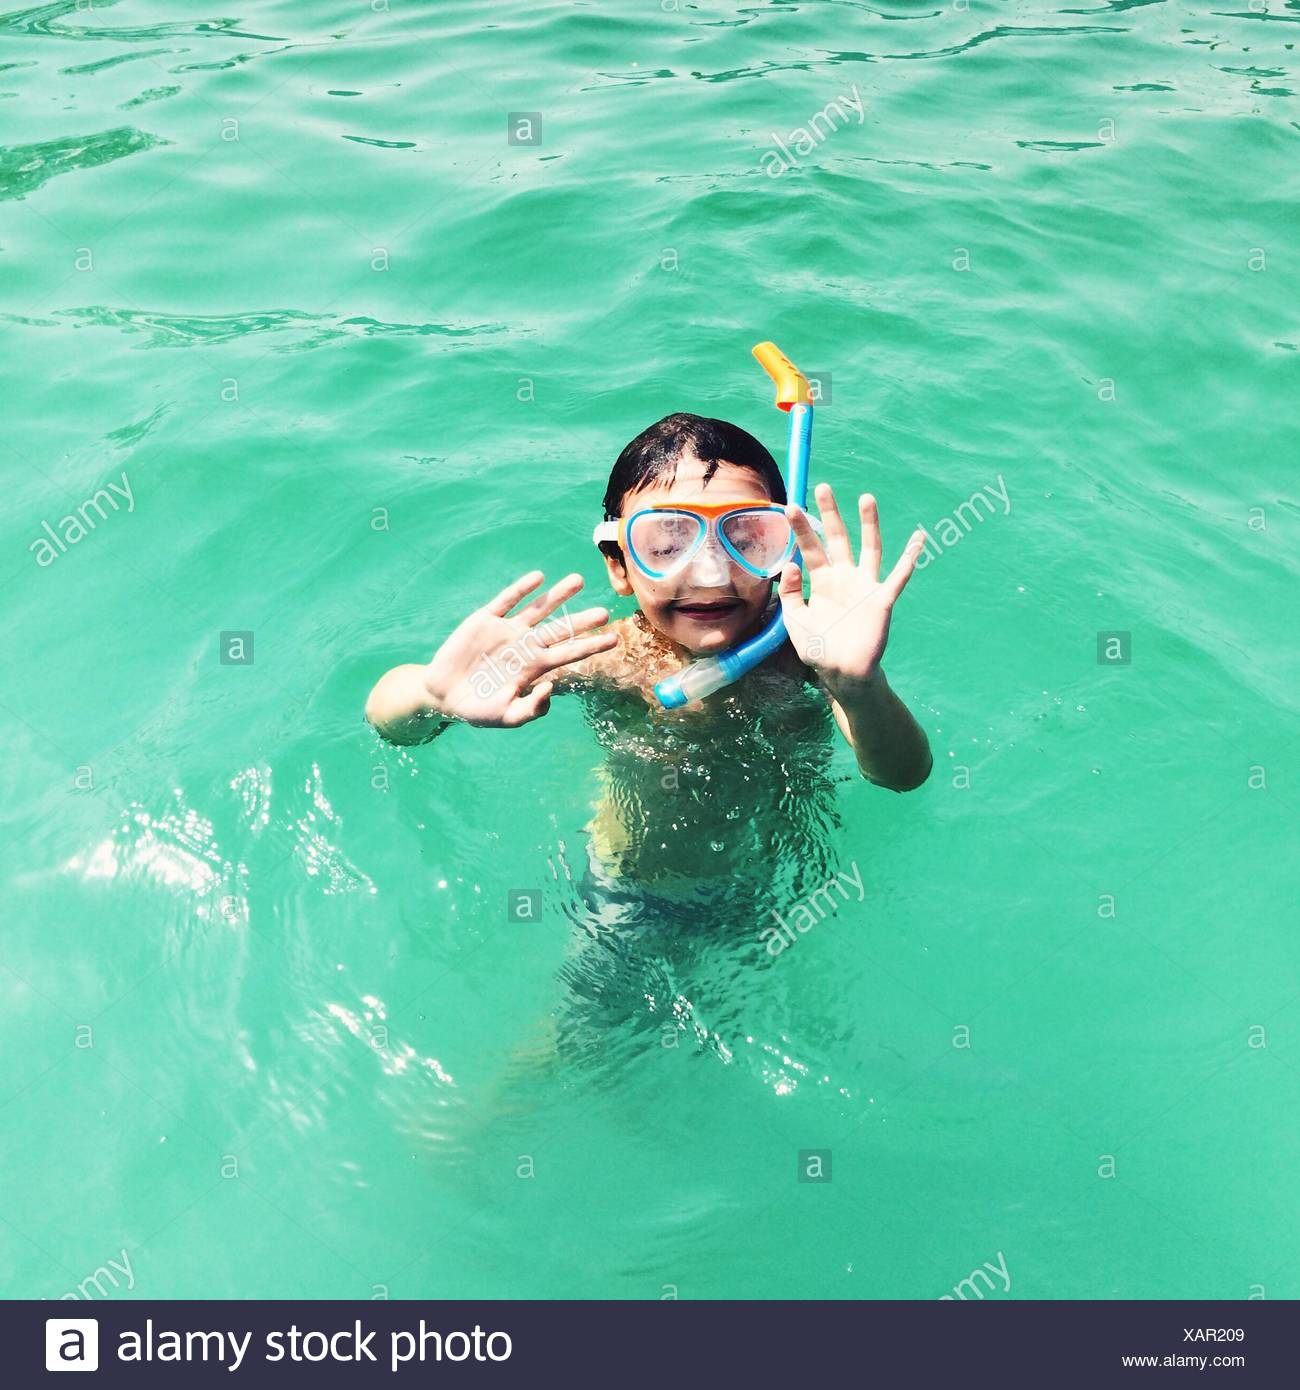 High Angle View Of Boy With Scuba Mask In Swimming Pool - Stock Image